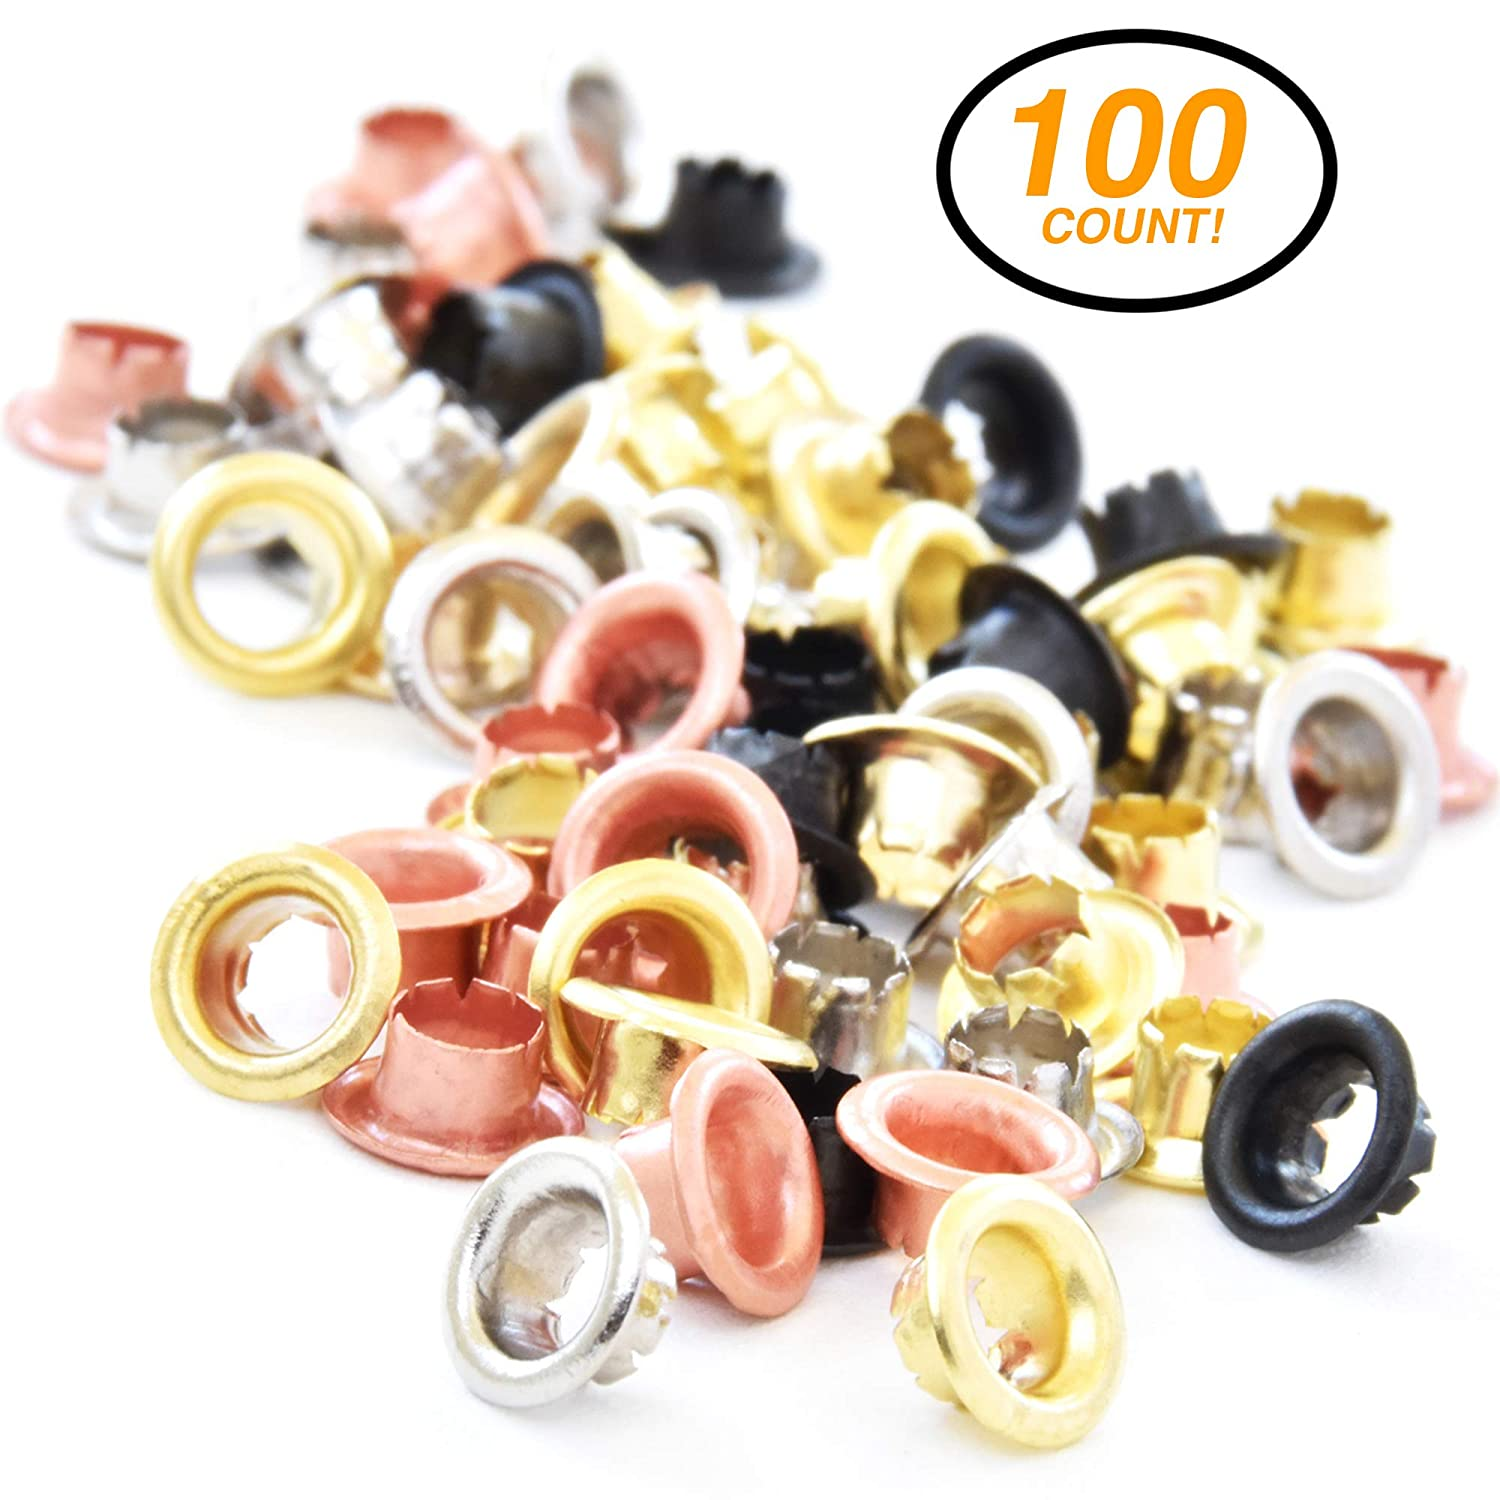 RamPro 3/16 Metal Eyelets, Stainless Steel Grommets with Brass, Silver, Copper and Black Finish, for Shoes Clothes Crafts Eyelet Repair Replacement Pack, Set of 100 Mix N More Inc 3033